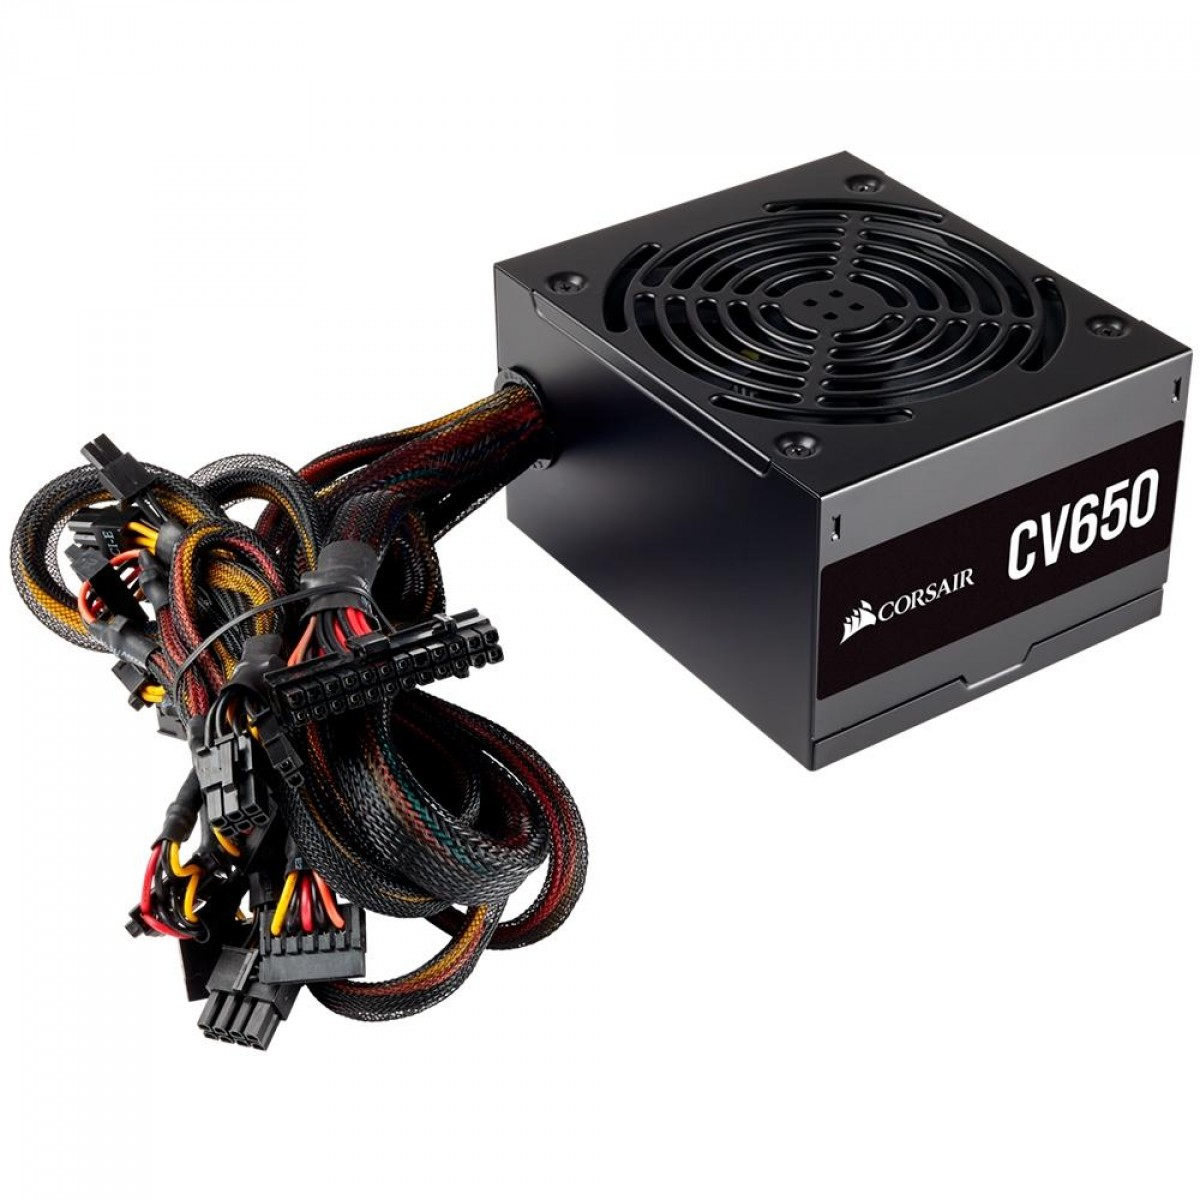 Fonte Corsair CV650, 650W, 80 Plus Bronze - CP-9020211-BR